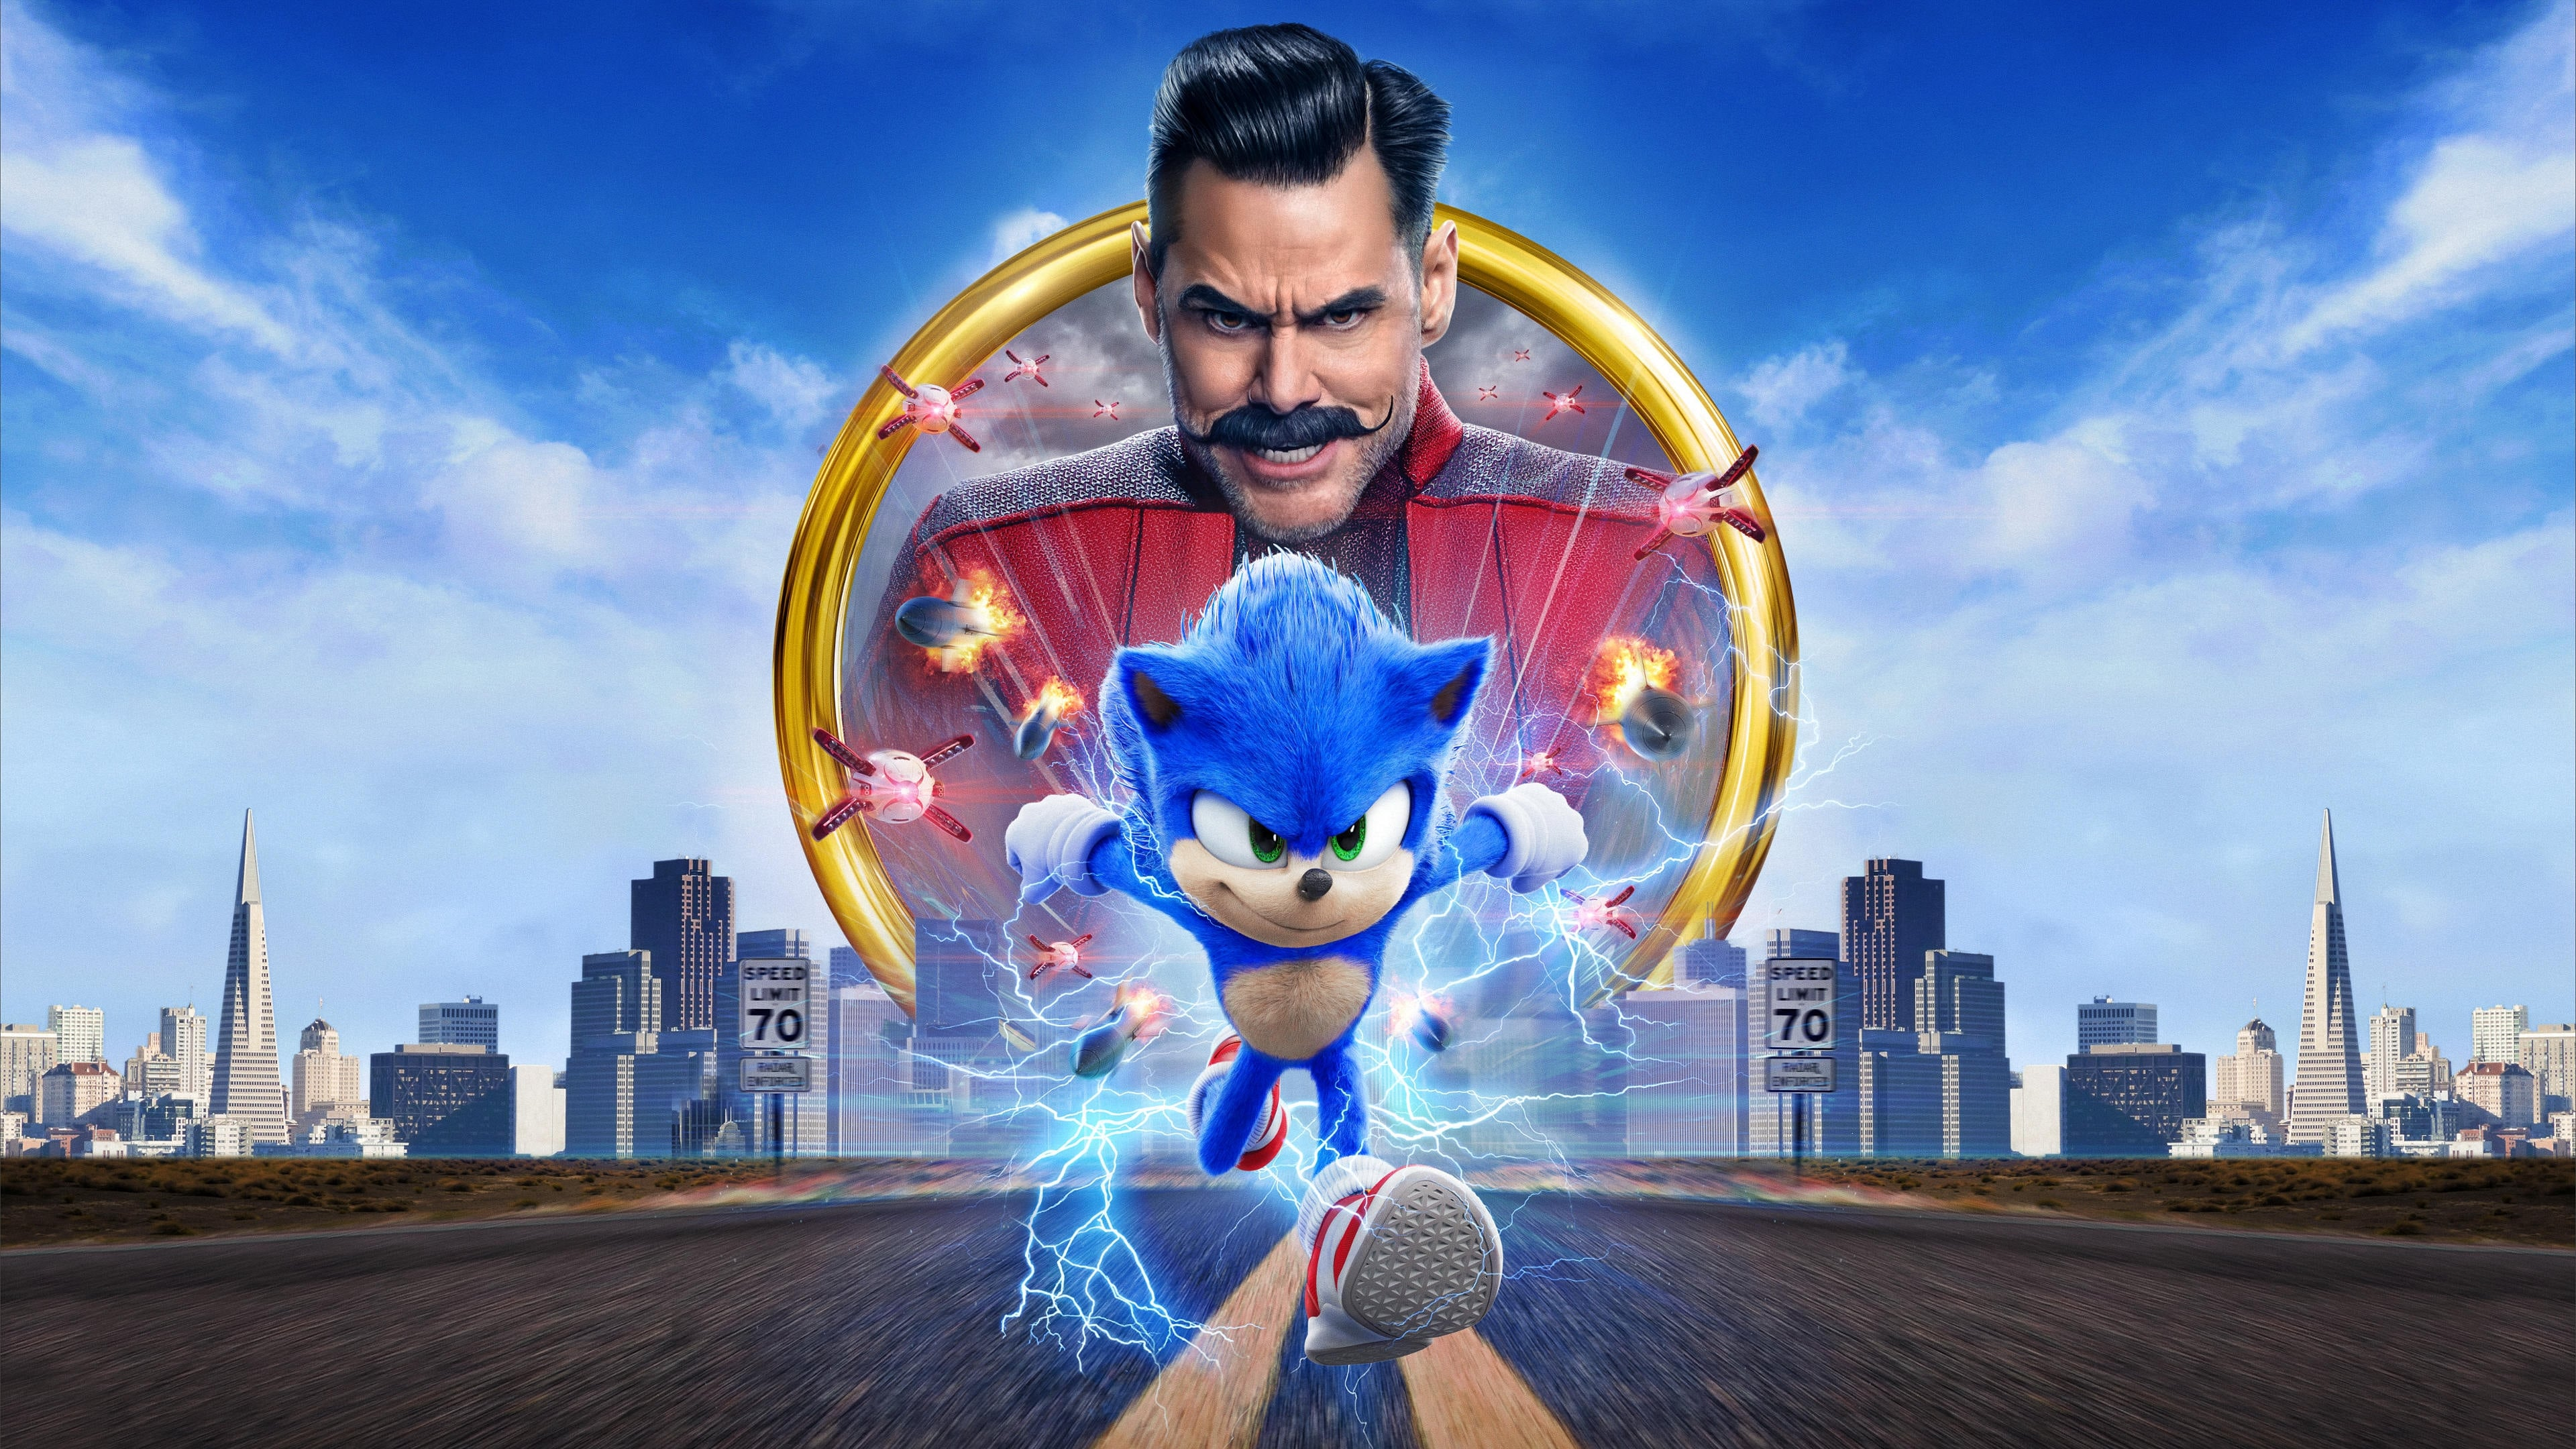 Sonic the Hedgehog movie free download